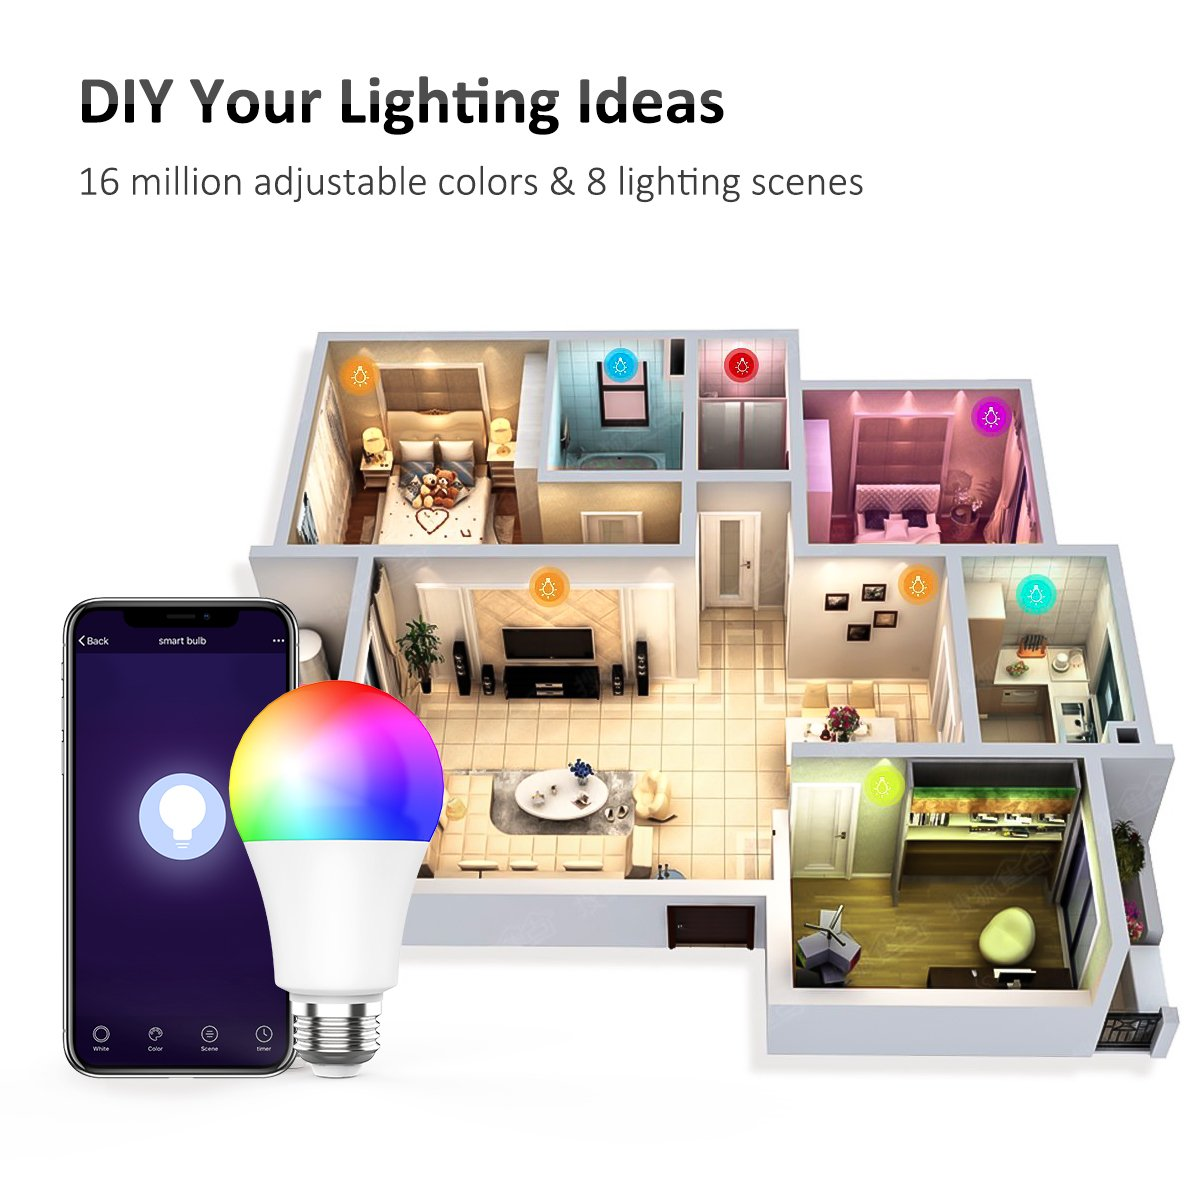 Novostella Smart Light Bulb, RGBCW Wi-Fi LED Bulb A19[7W 600LM] Dimmable Multicolored Lights, No Hub Required, Works with Amazon Alexa and Google Home, 60W Equivalent (3 Pack) by NOVOSTELLA (Image #6)